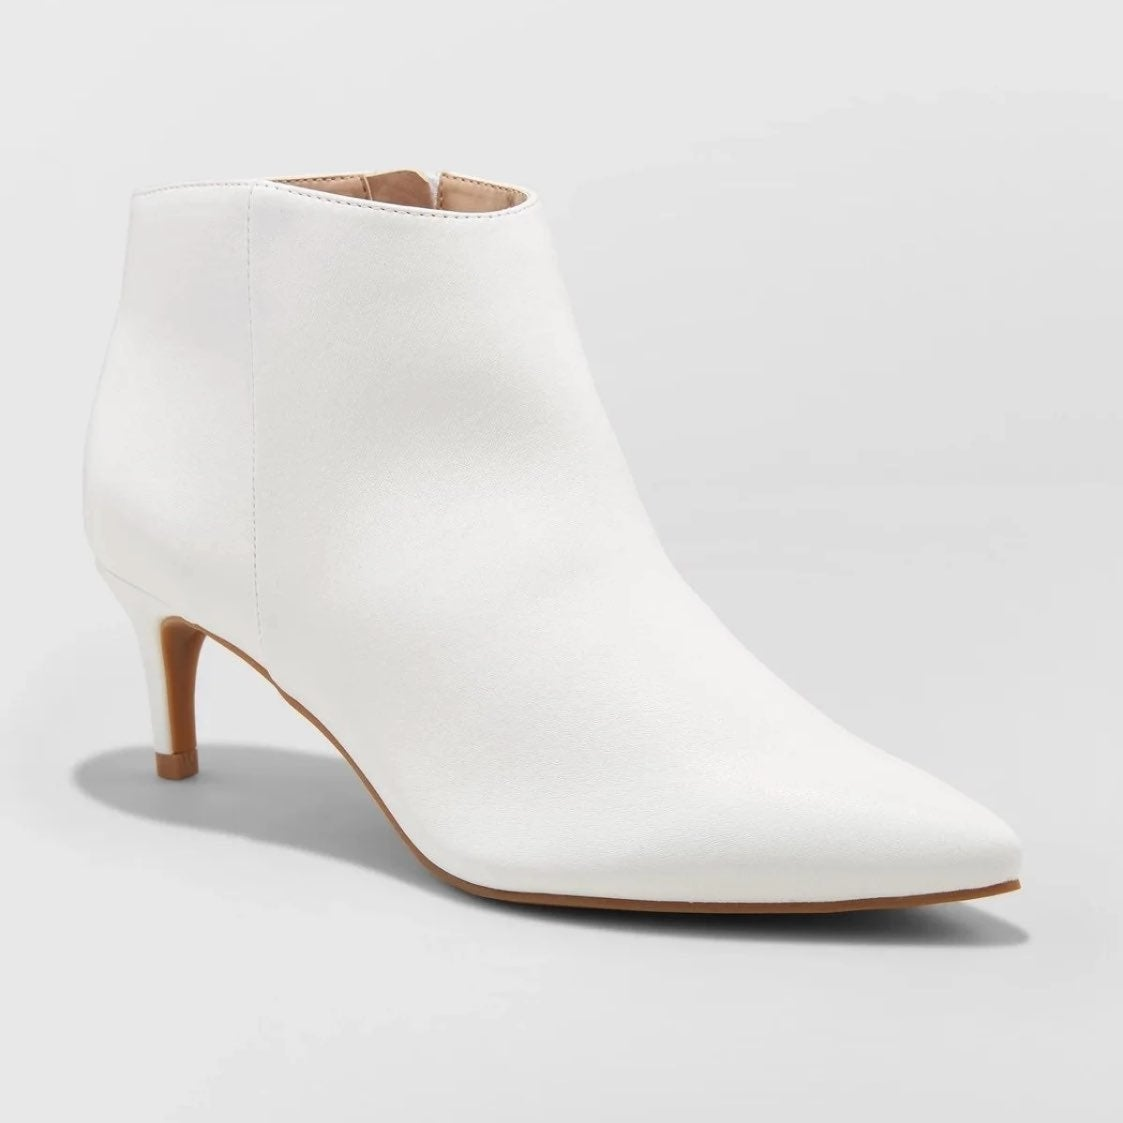 NWT A New Day Booties